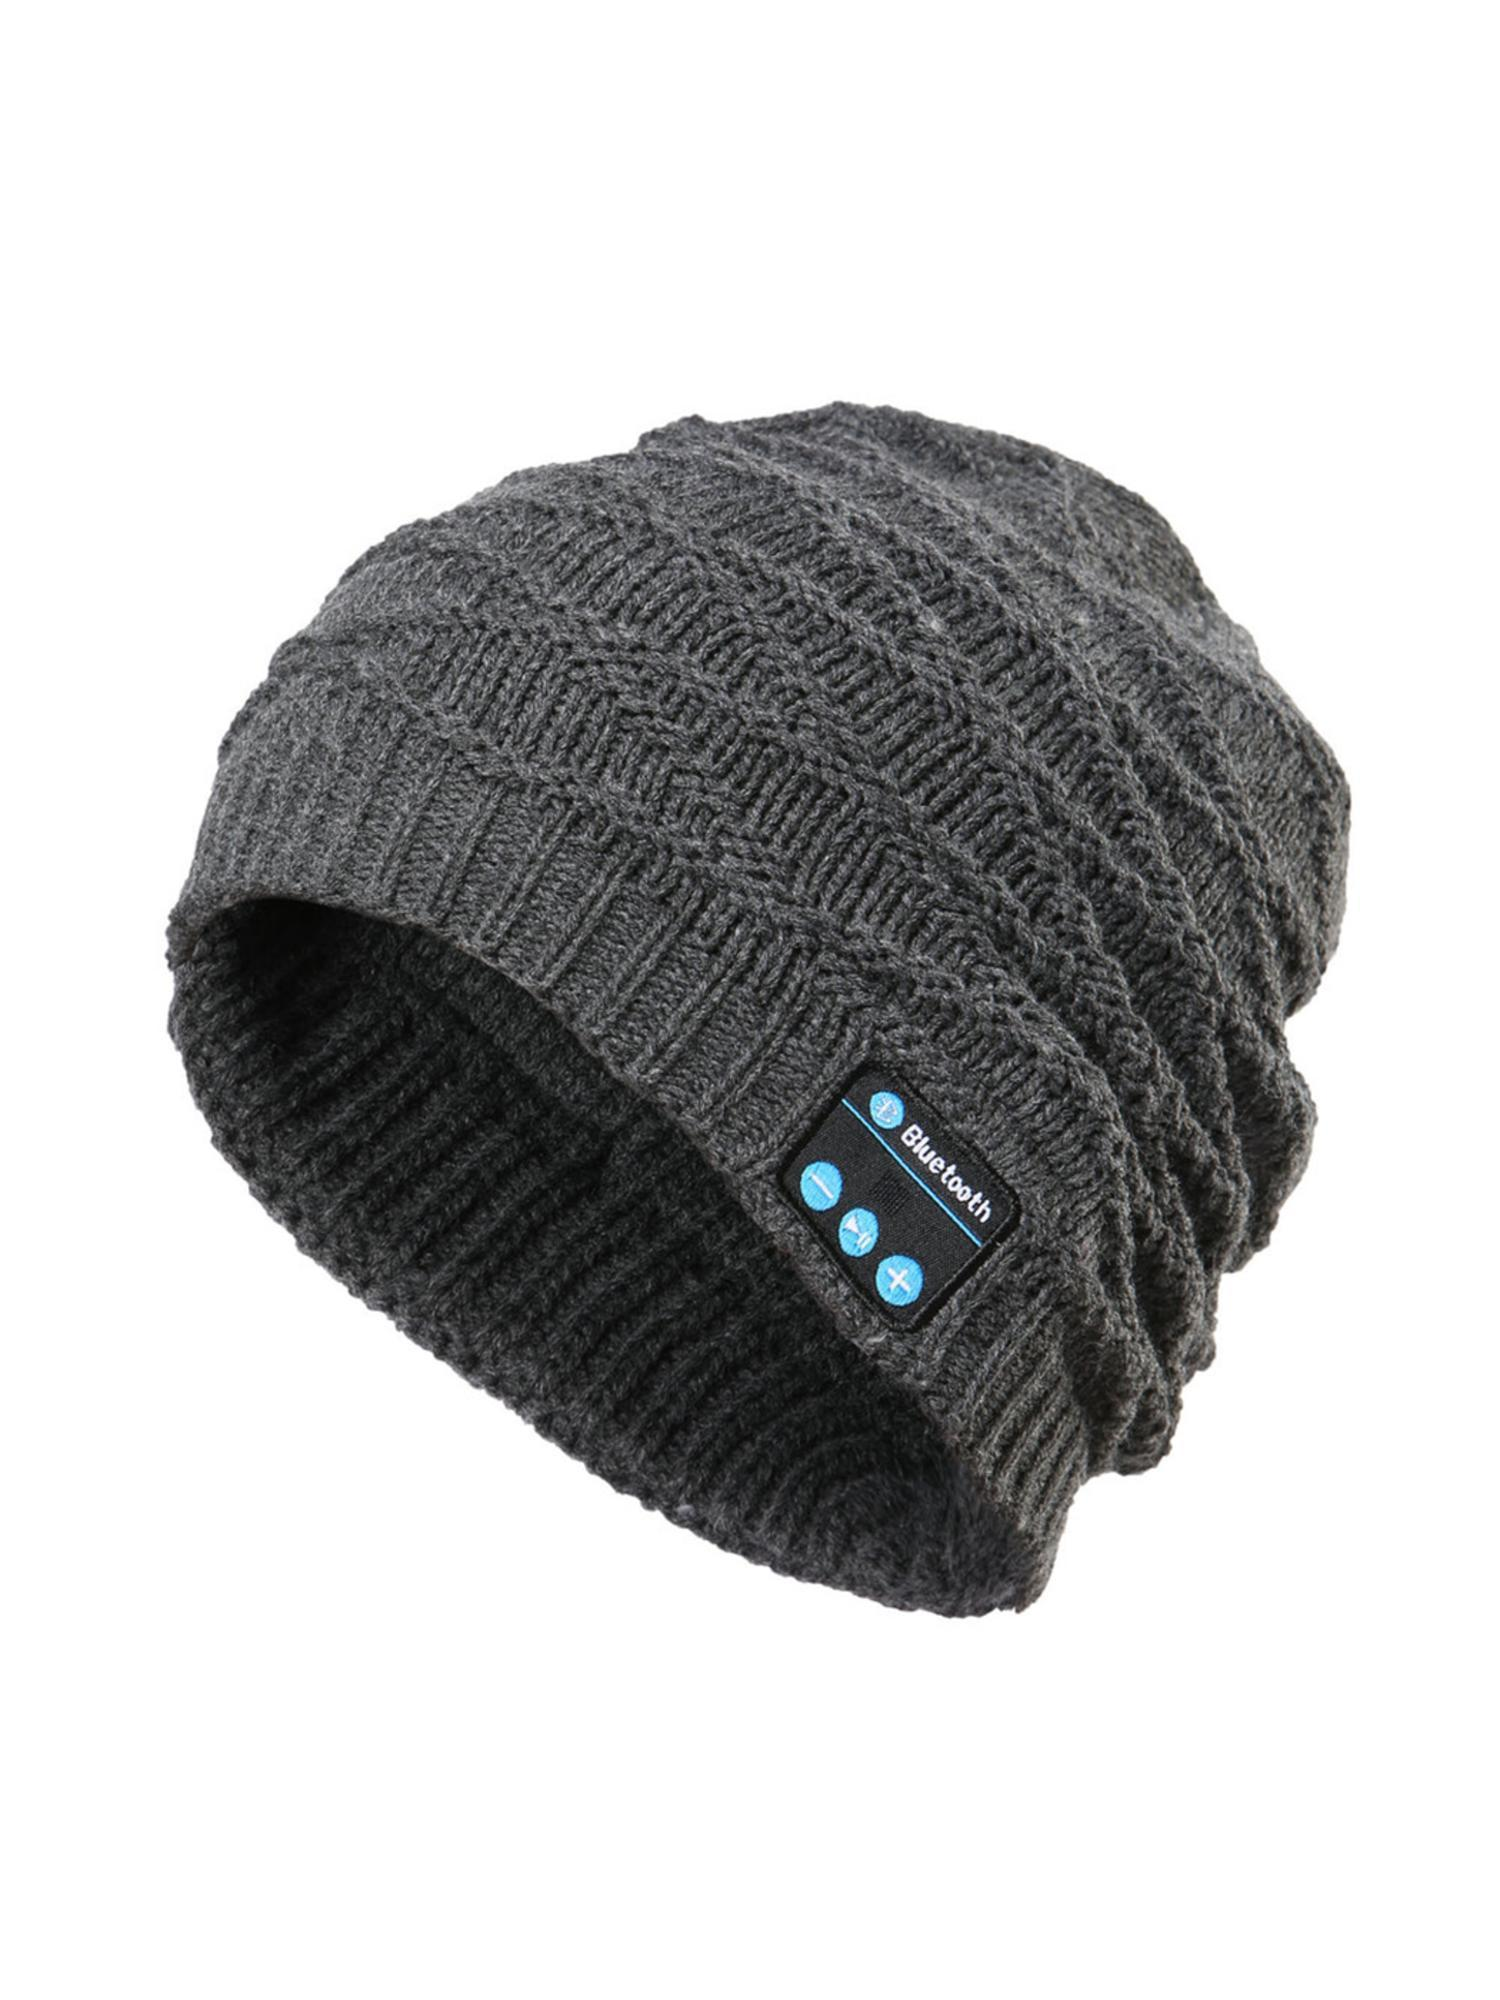 Unisex Soft Warm Bluetooth Music Hat Knitted Hat With Bluetooth ... b3473b551ef